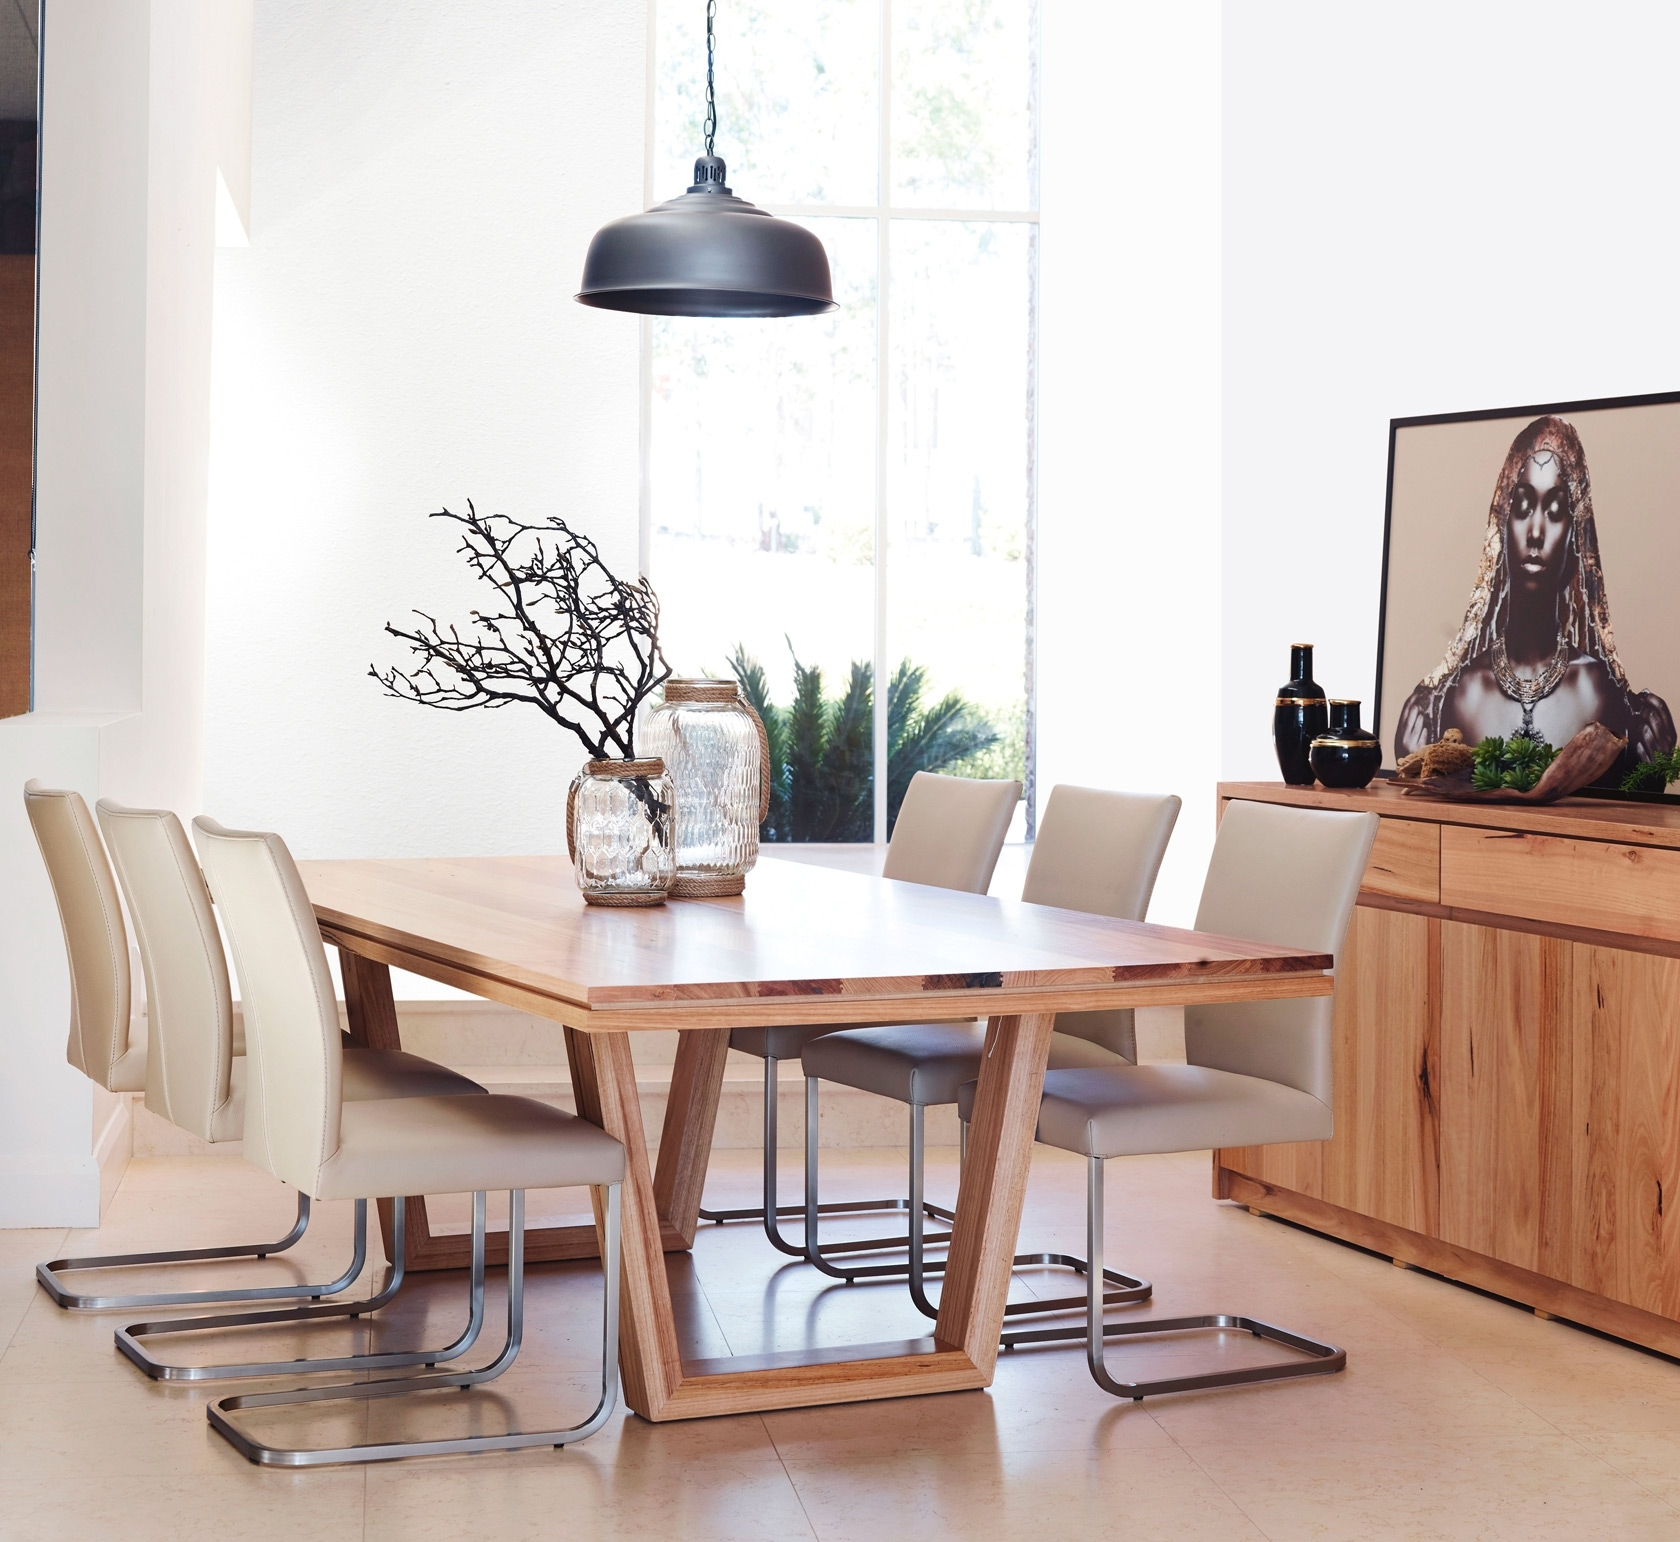 Harvey Dining Tables Regarding Widely Used Your Home, Your Style: Choose From Our Top 5 Looks (Gallery 3 of 25)